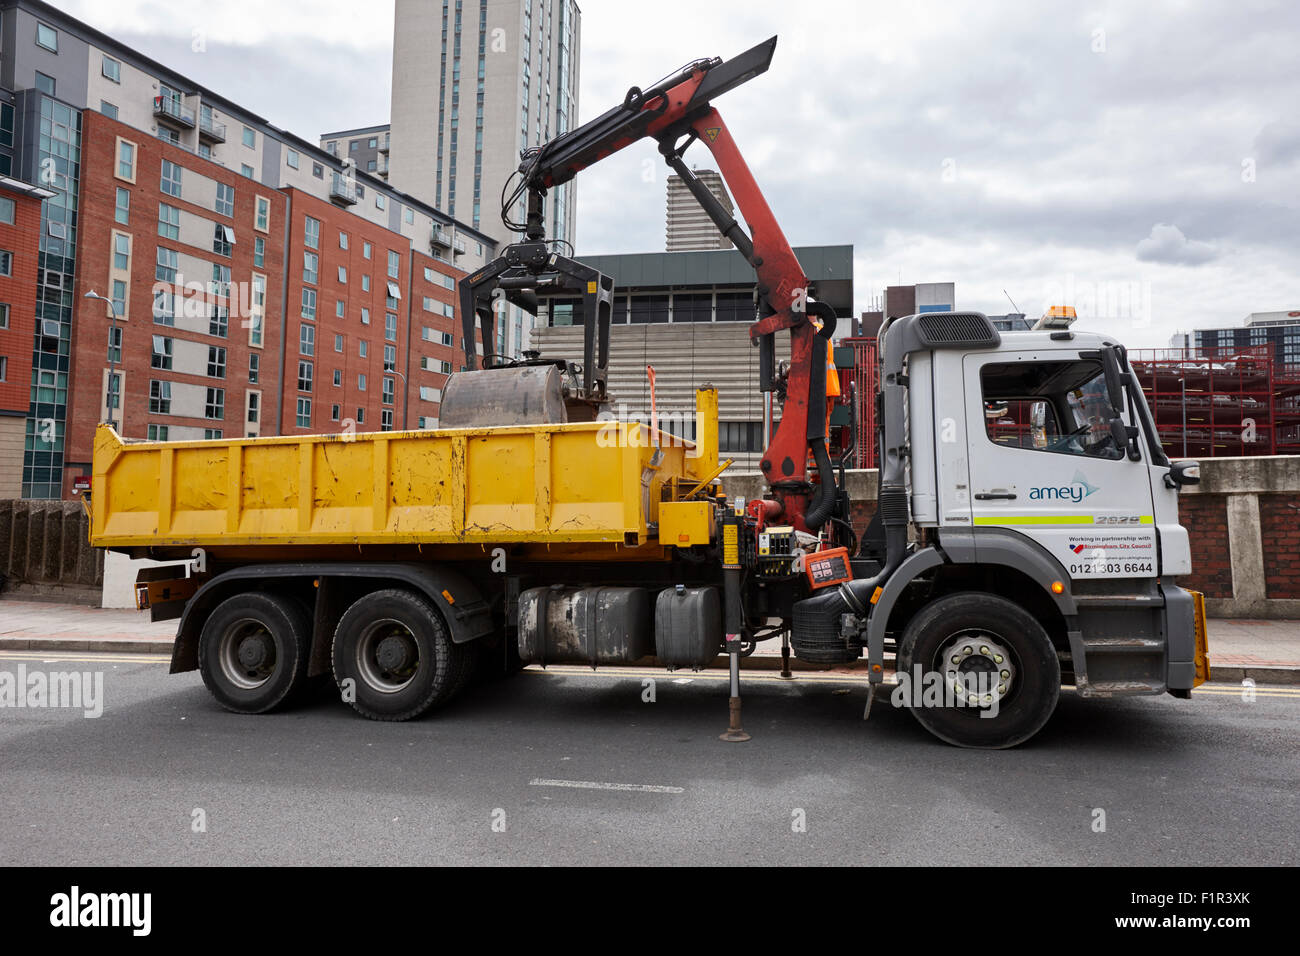 lorry unloading building materials at the roadside in city centre Birmingham UK - Stock Image